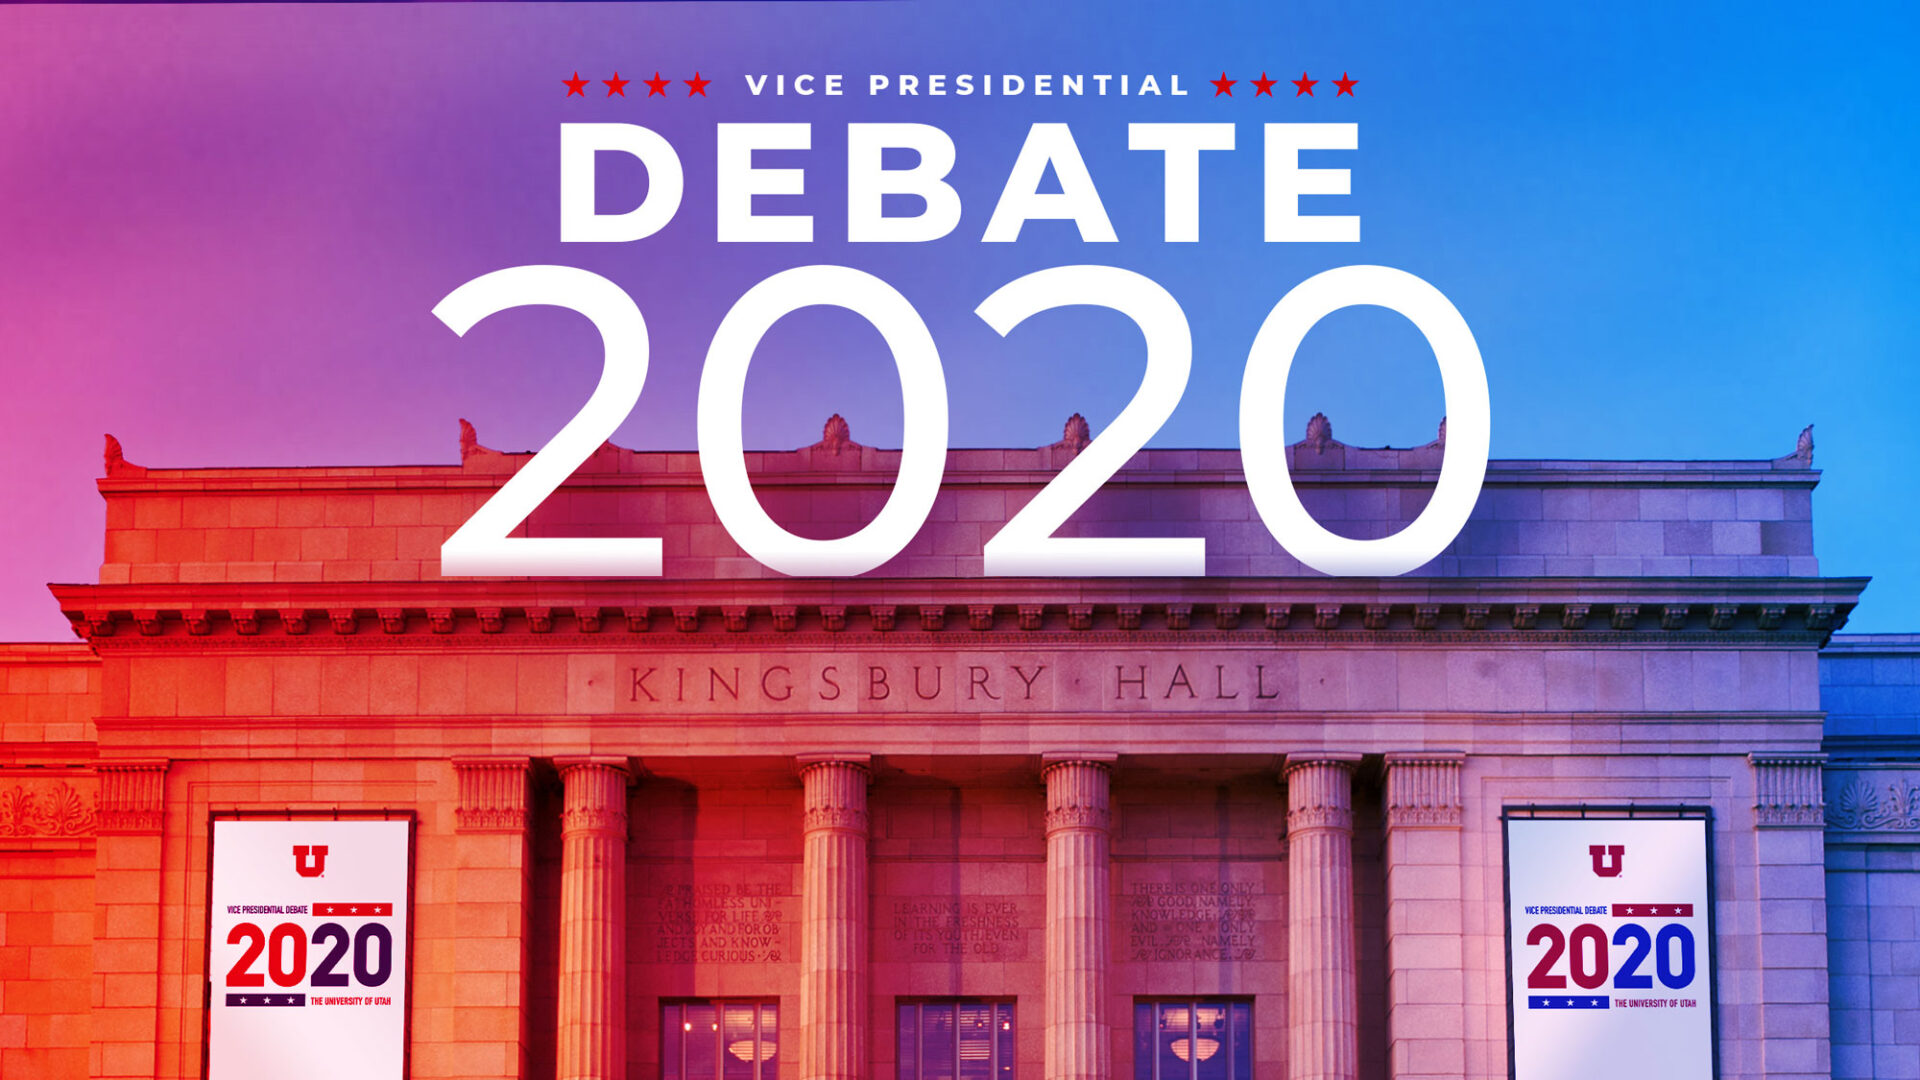 Wednesday's vice presidential debate will happen at the University of Utah in Salt Lake City. (Source: University of Utah)